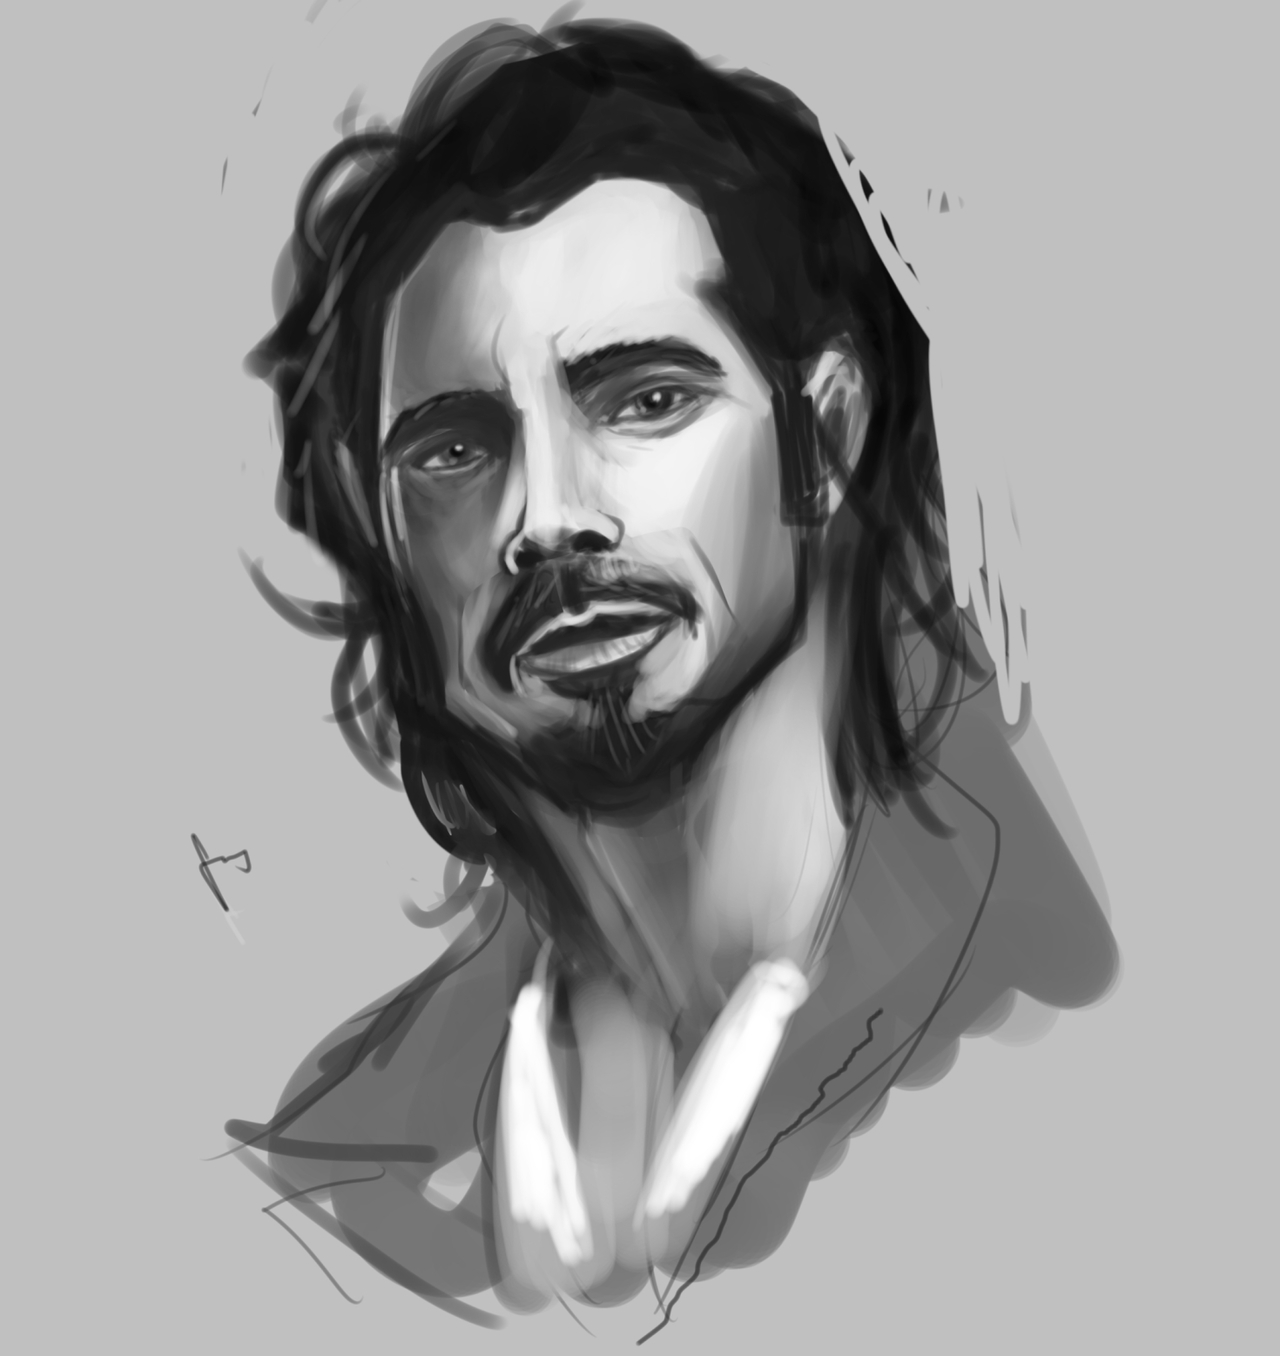 Chris Cornell portrait